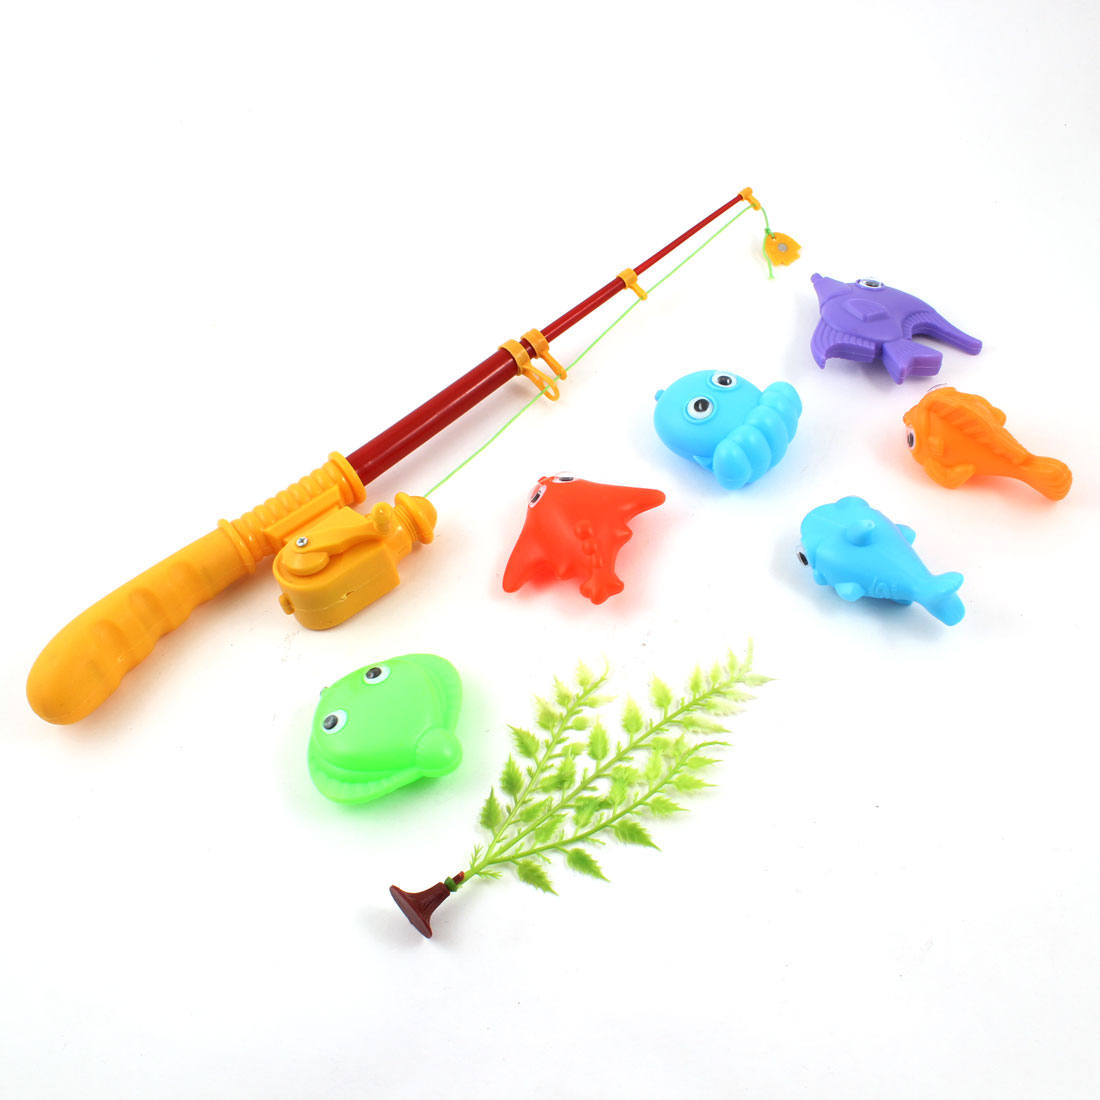 8 in 1 Colors Plastic Sea Creatures Magnetic Telescopic Fishing Rod Toy for Kids